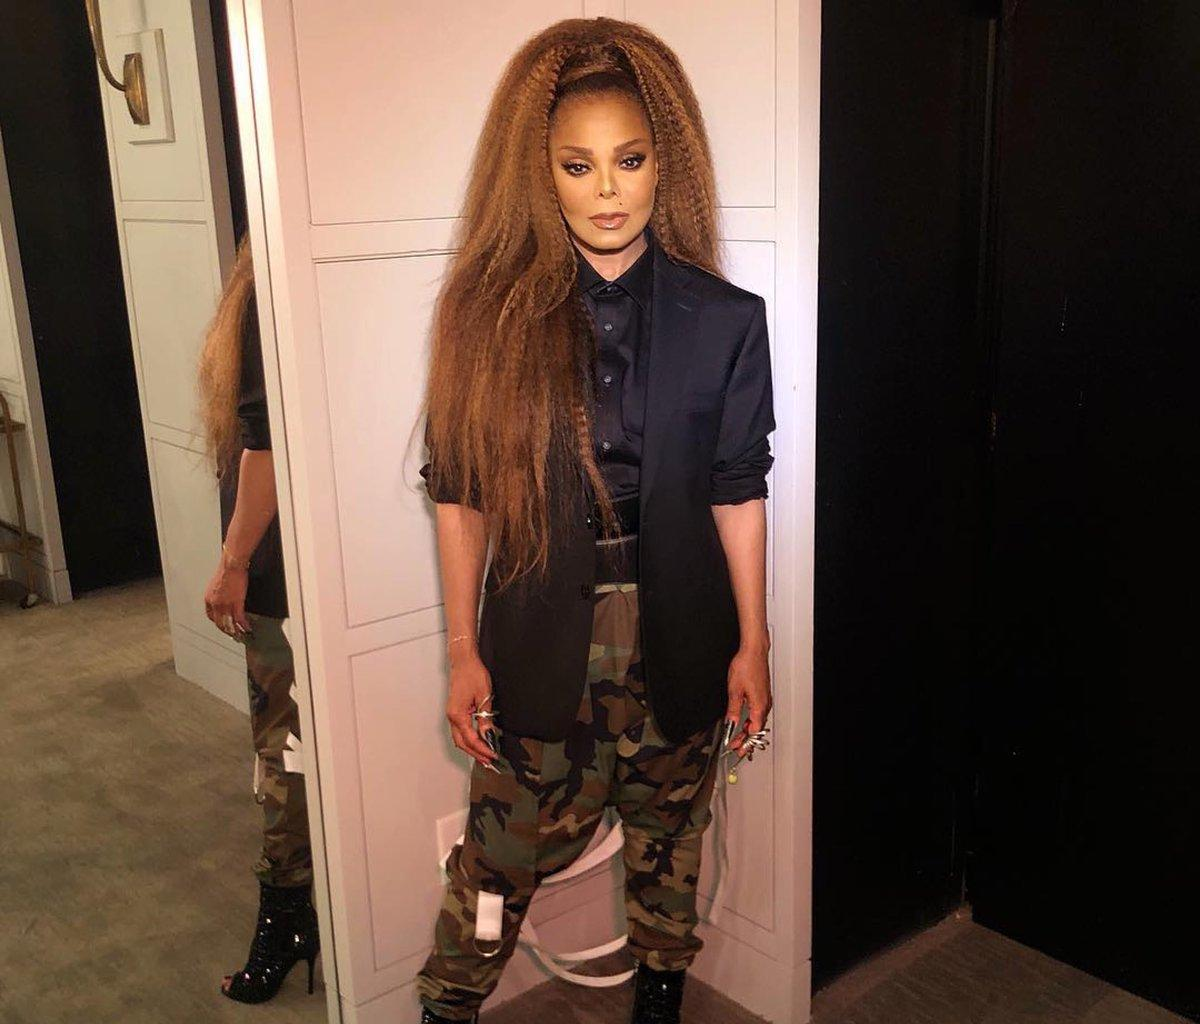 Janet Jackson Reportedly Photoshopped The Glastonbury Festival 2019 Line-Up Poster So That Her Name Comes First - Here Are The Before And After Versions